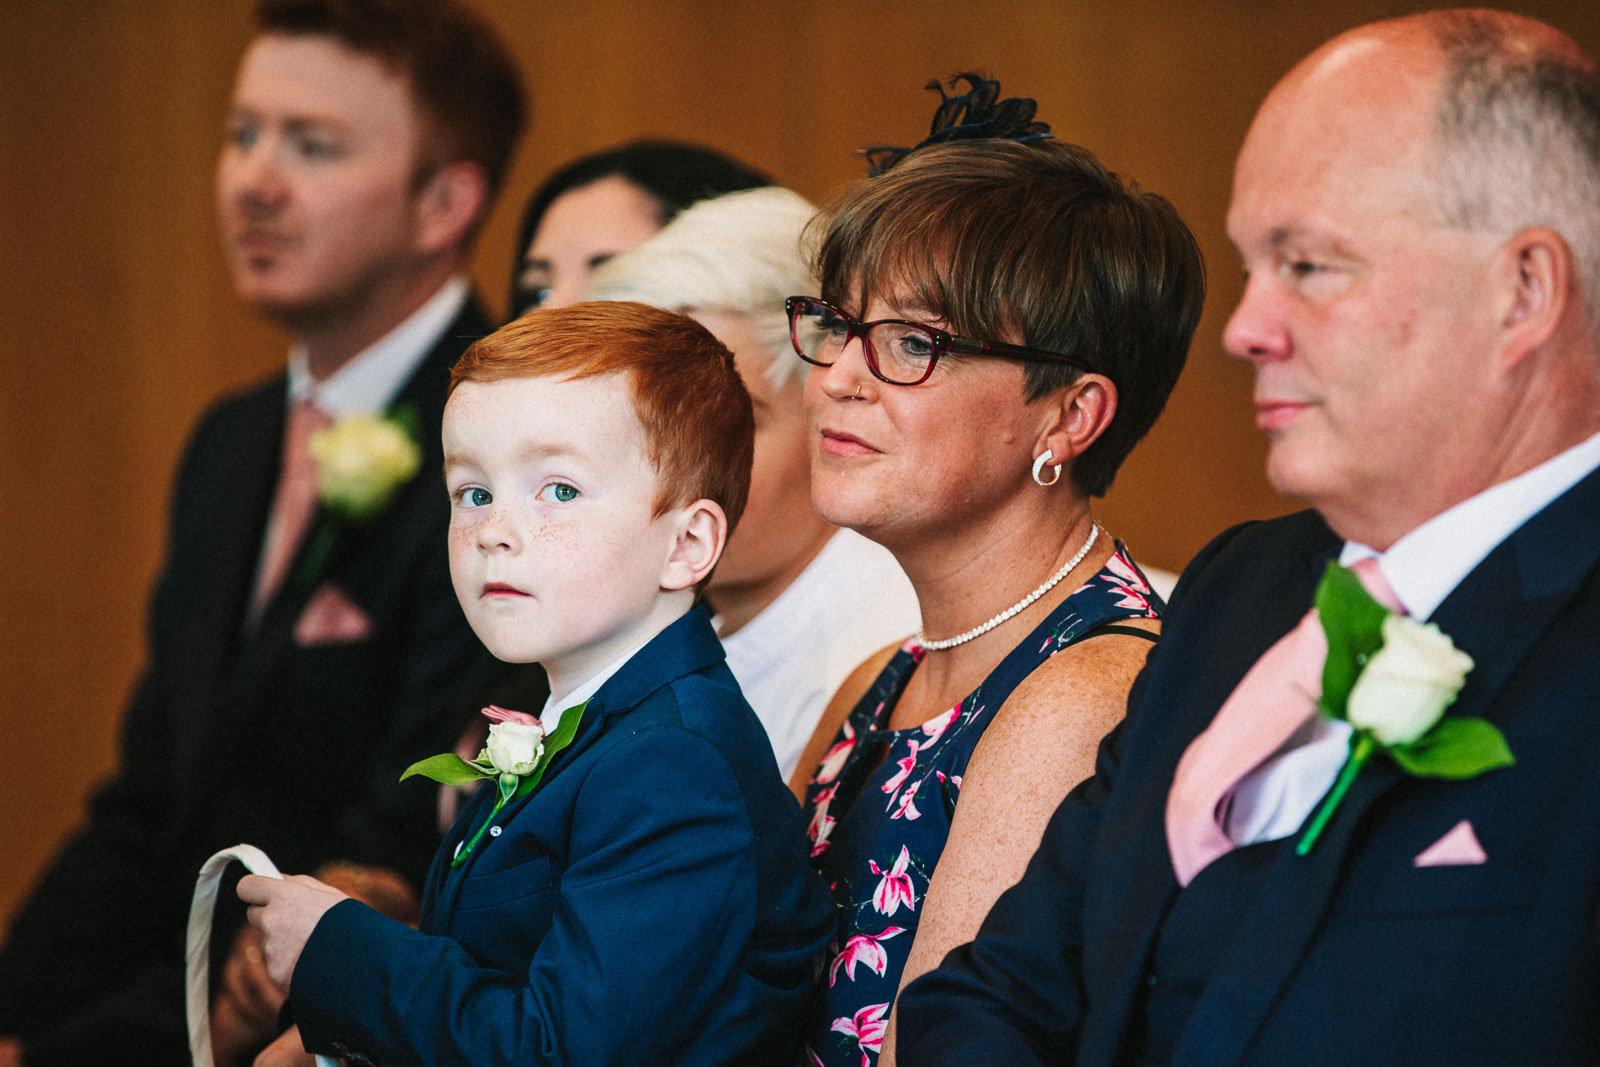 kilhey-court-hotel-wedding-46